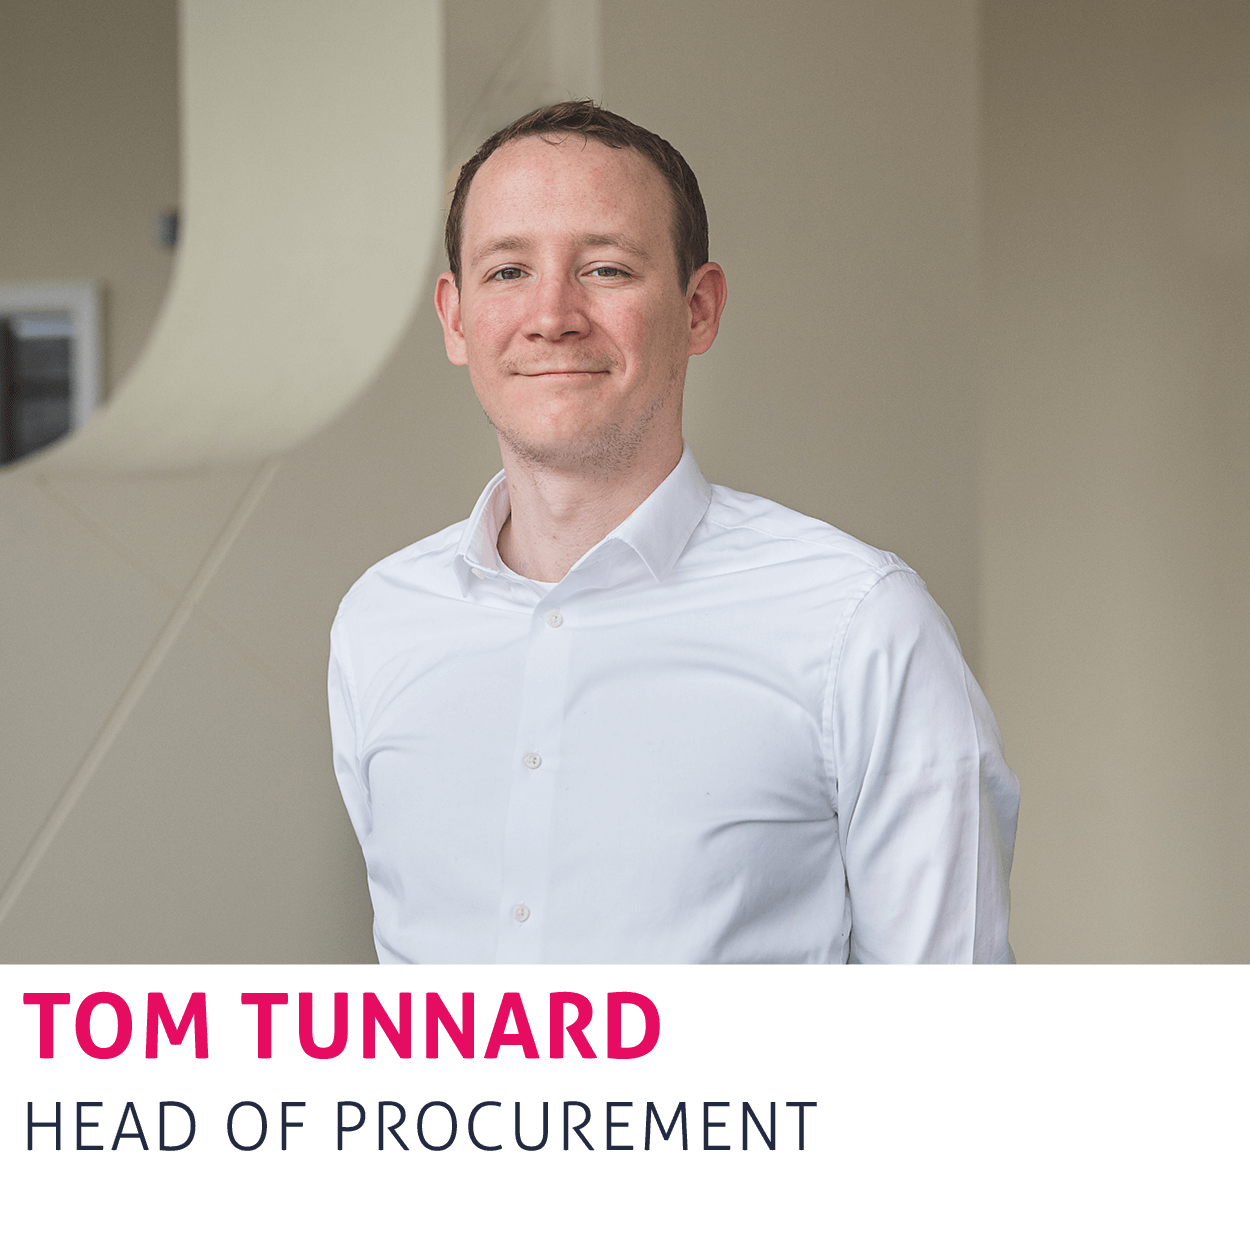 Tom Tunnard, Head of Procurement